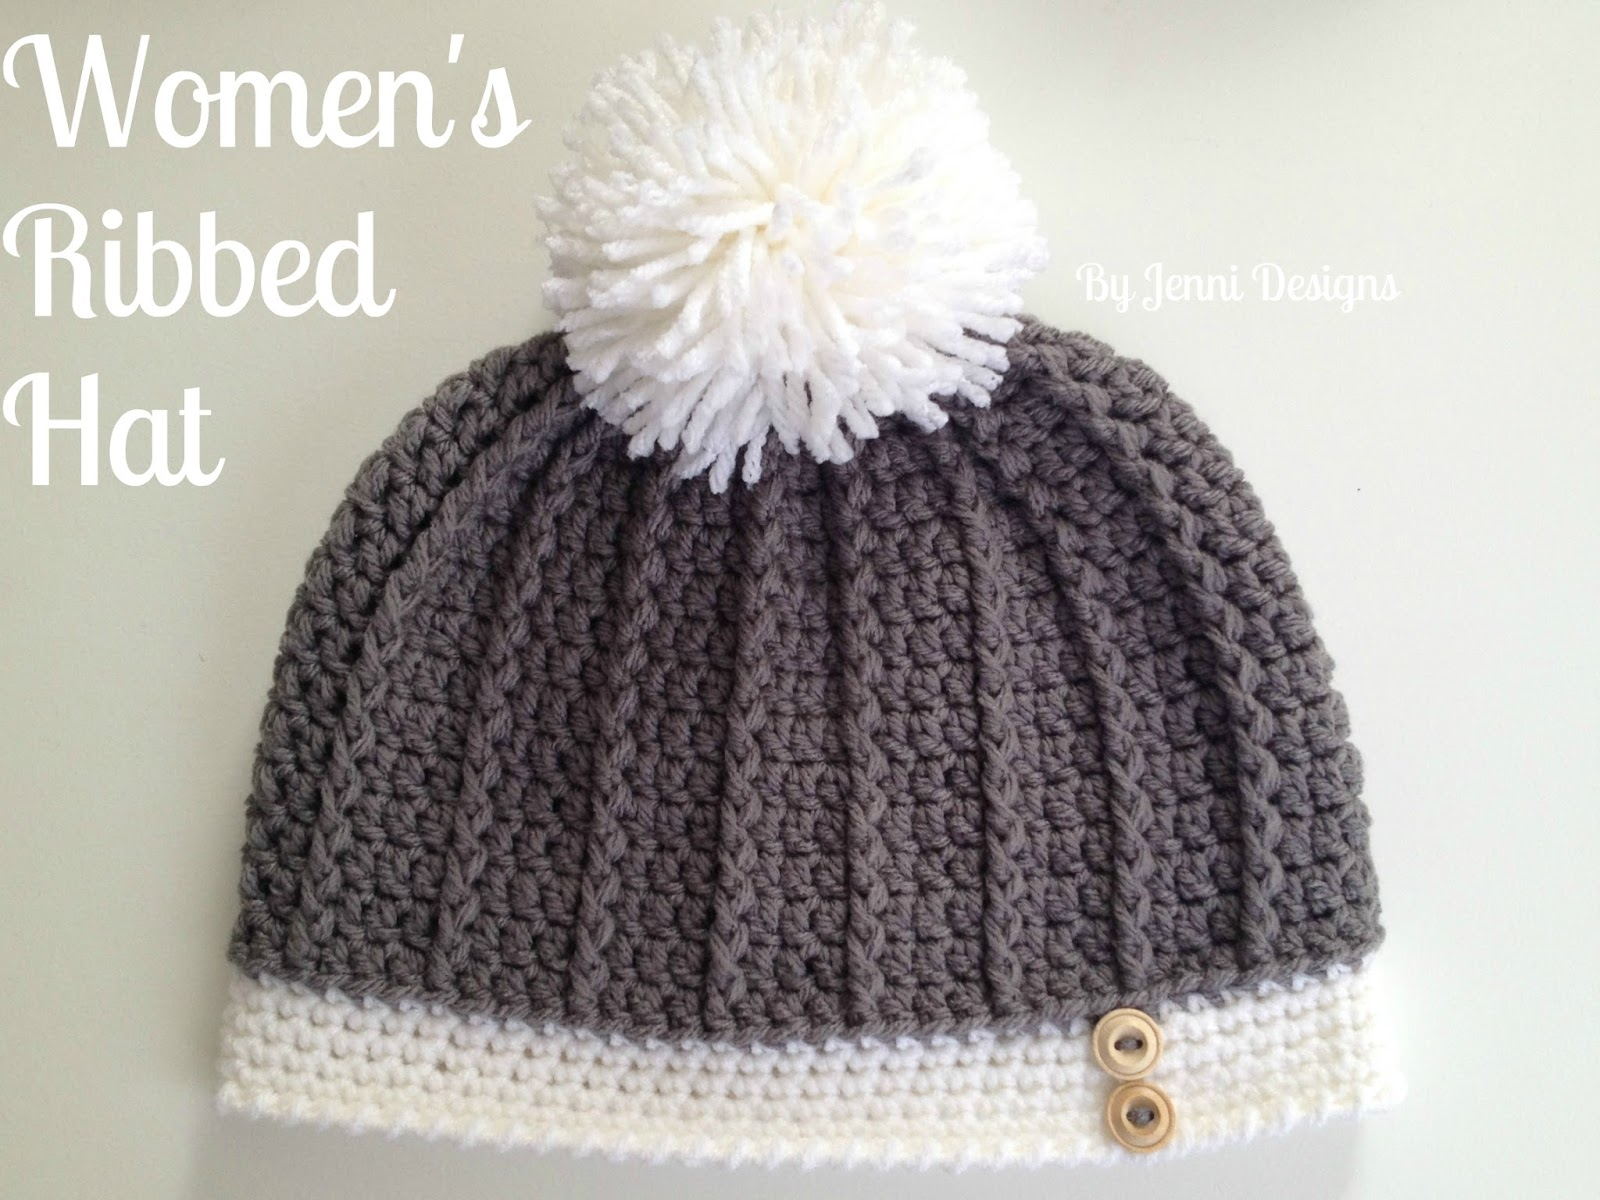 Free Crochet Pattern  Women s Ribbed Hat. (Shown in Red Heart ... cdd5d9210b9